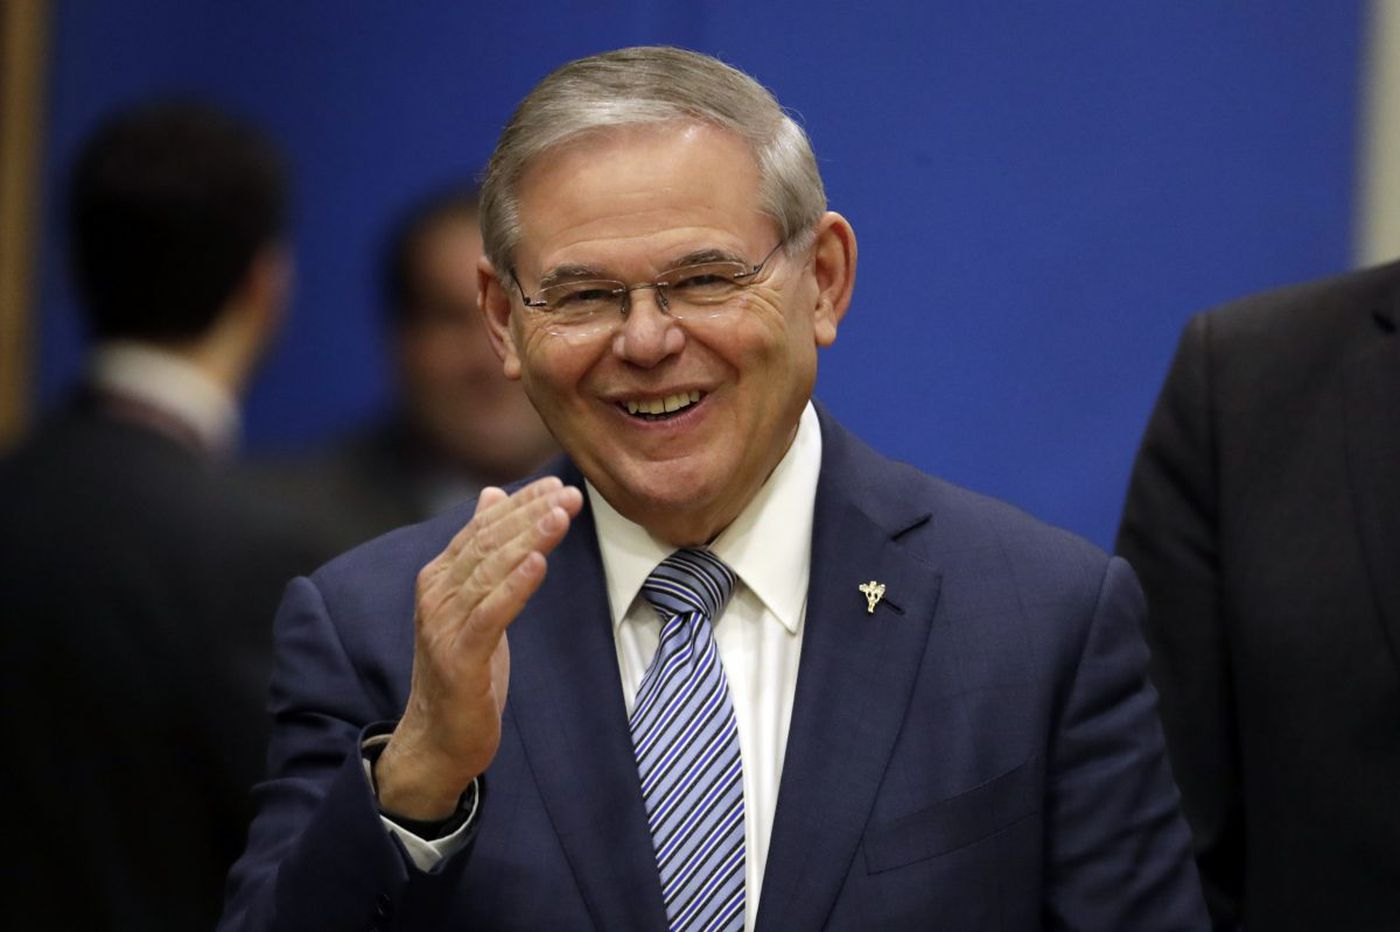 Sen. Bob Menendez 'severely admonished' by ethics committee